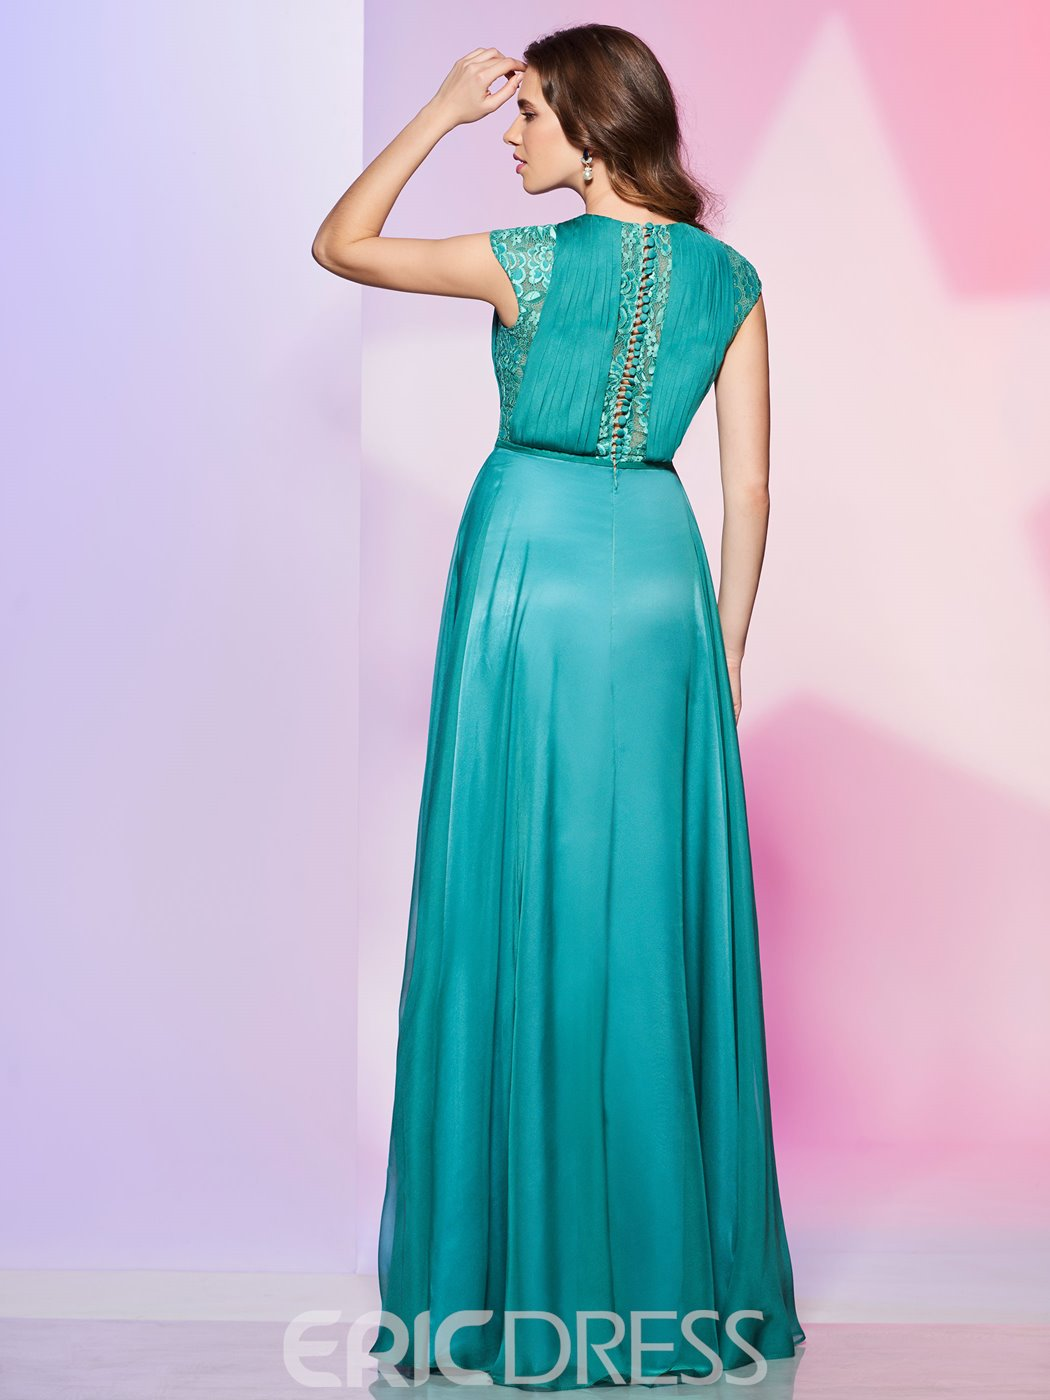 Ericdress A Line Cap Sleeve Lace Button Back Long Prom Dress